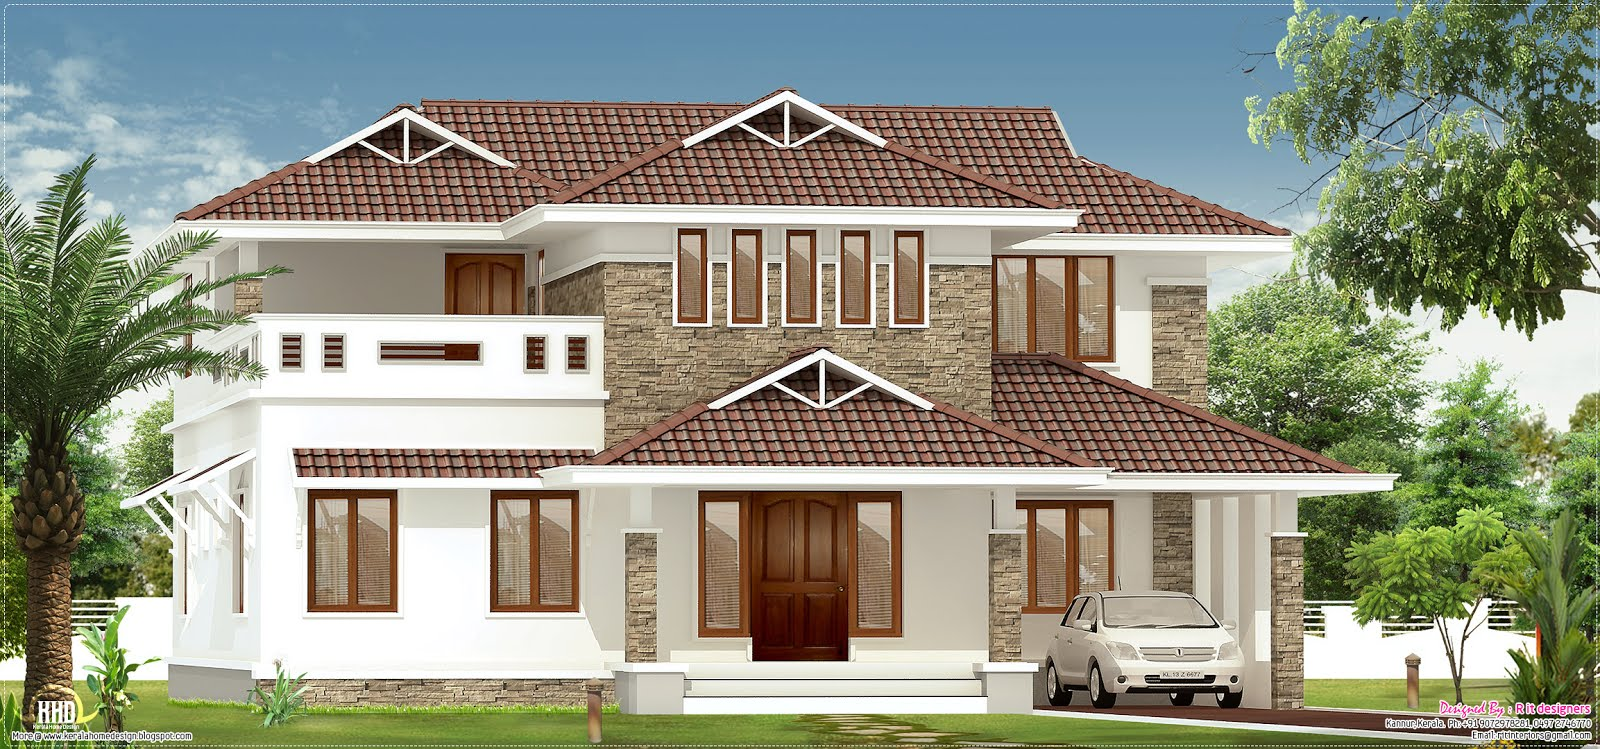 2013 home plans with elevation interior design ideas for Villa plans and designs